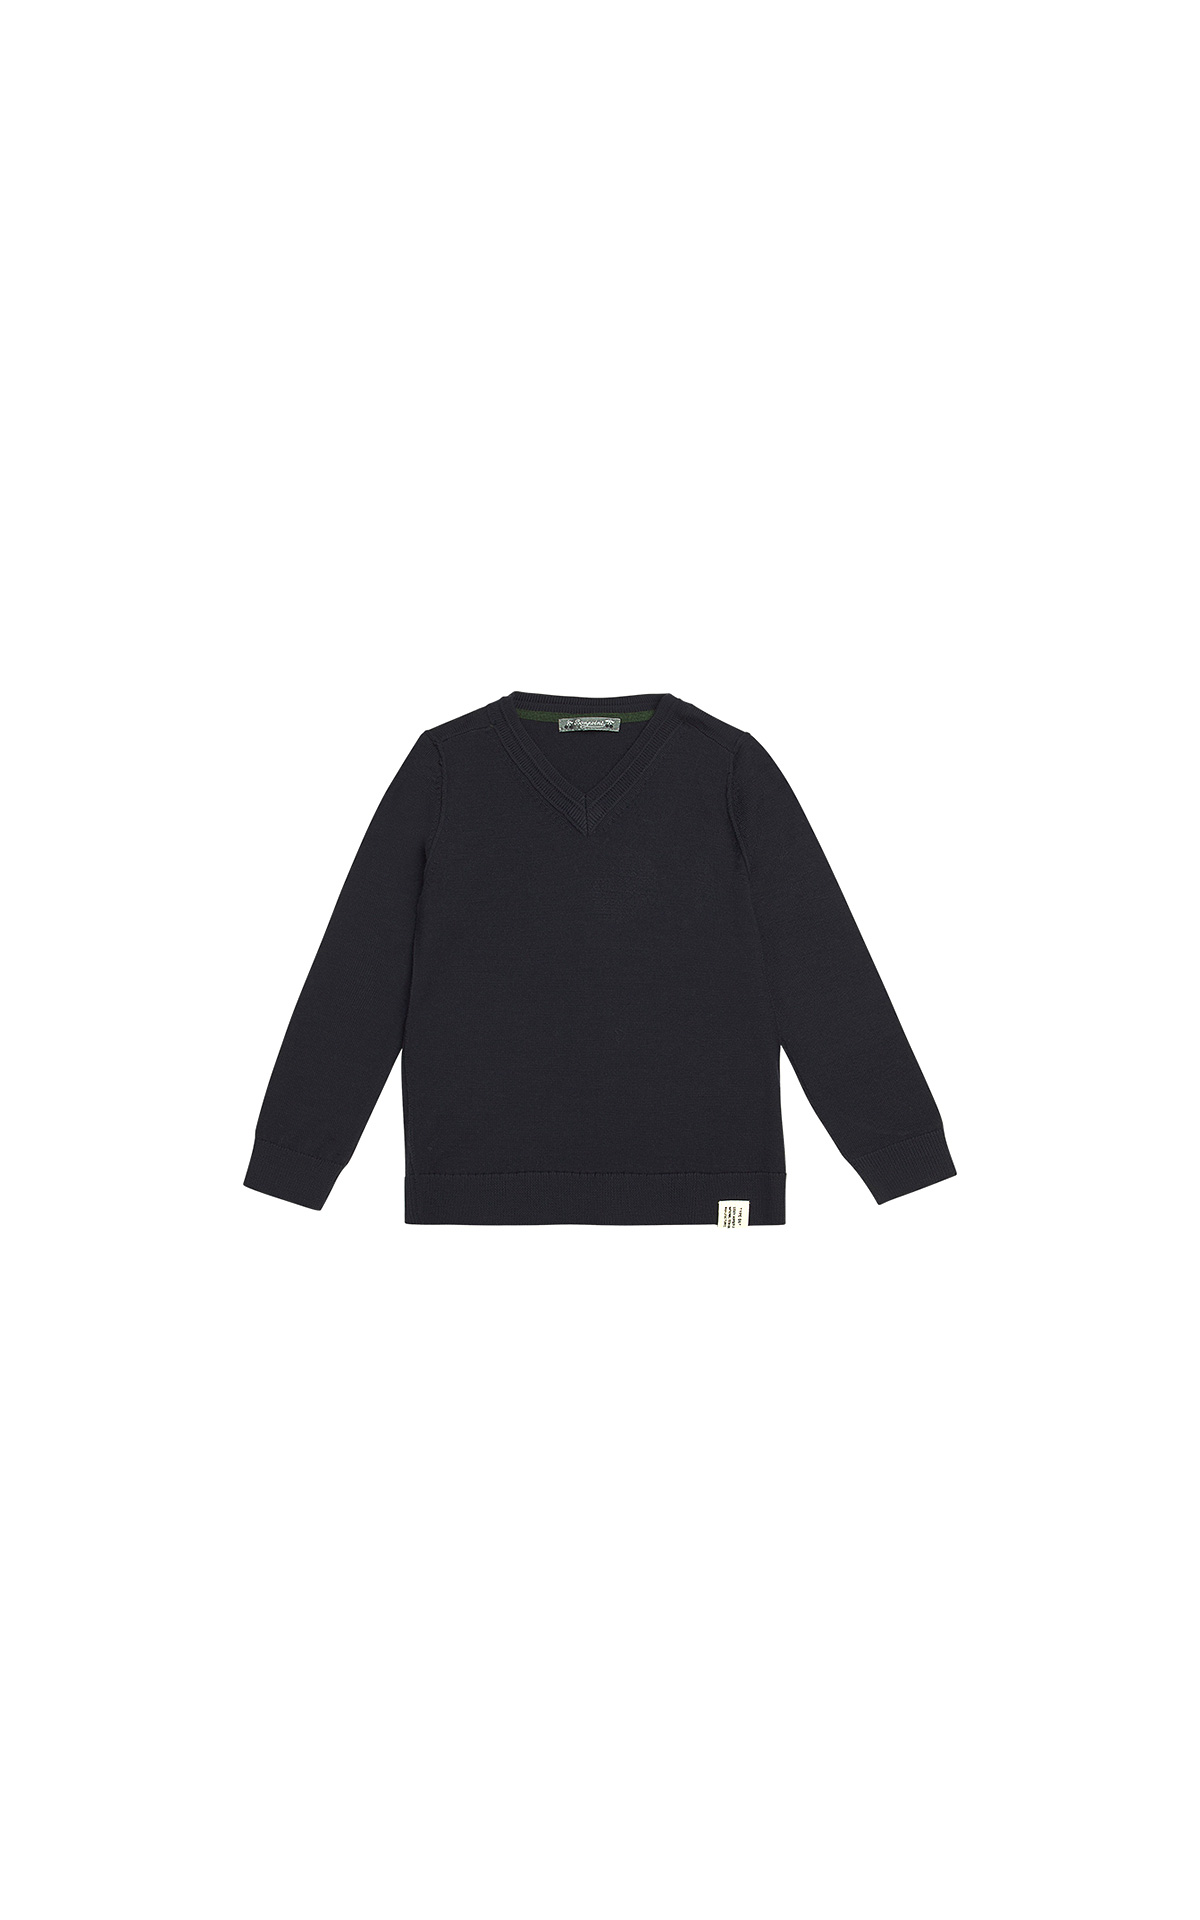 Bonpoint Boy's black jumper | La Vallée Village